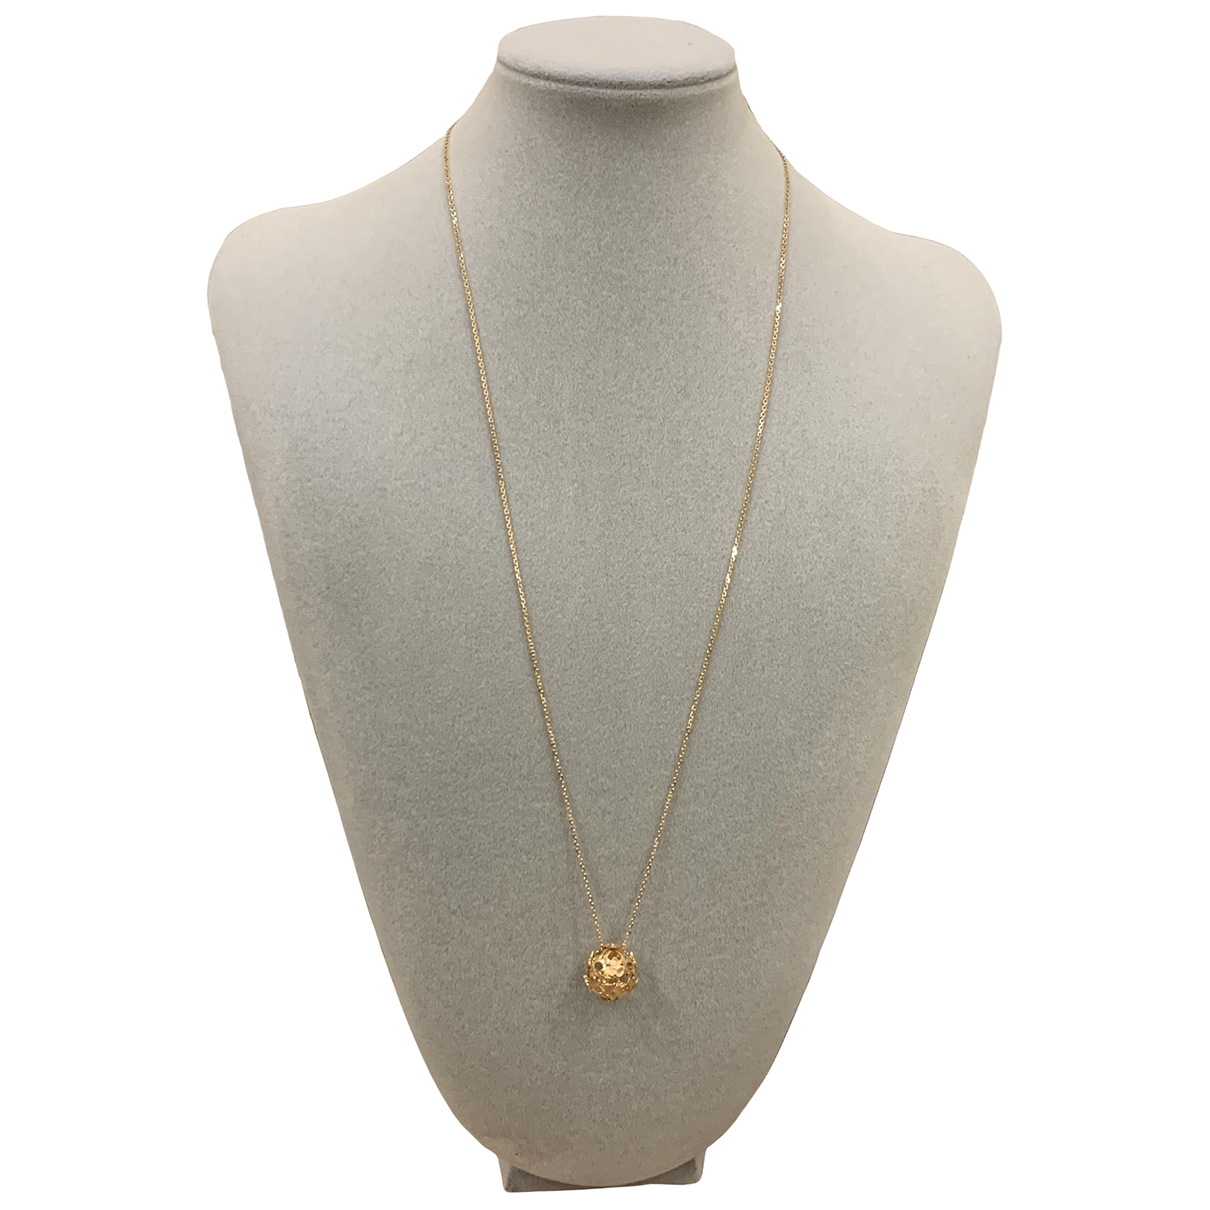 Chaumet \N Pink gold necklace for Women \N